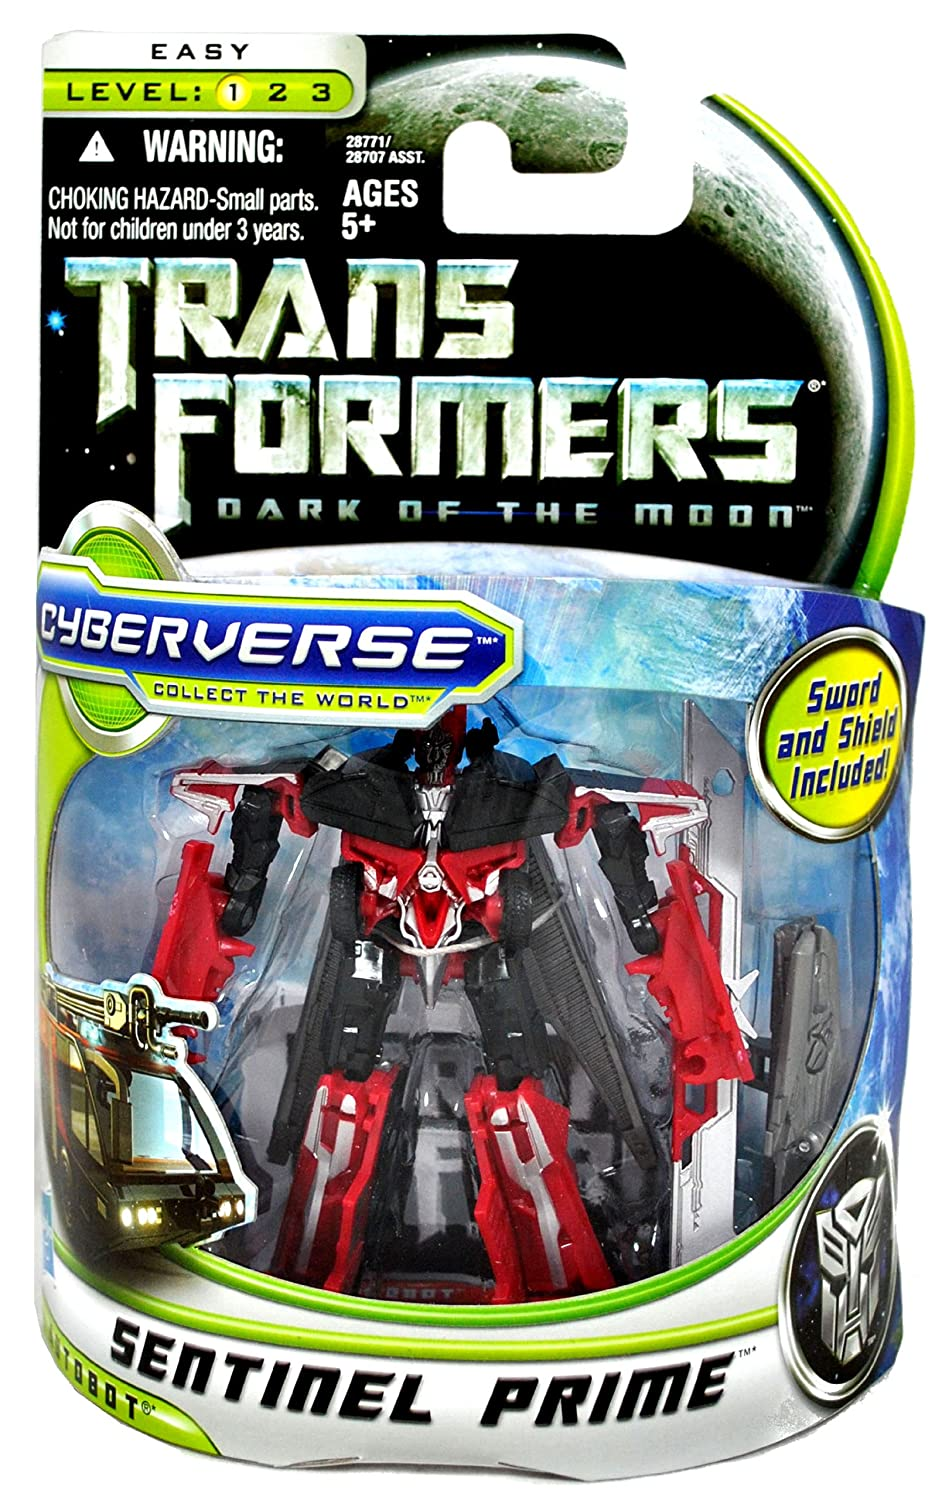 TRANSFORMERS – Commander Sentinel Prime – Autobot – Dark Of The Moon (DOTM) Cyberverse – Level 1 – Hasbro 28771 günstig online kaufen